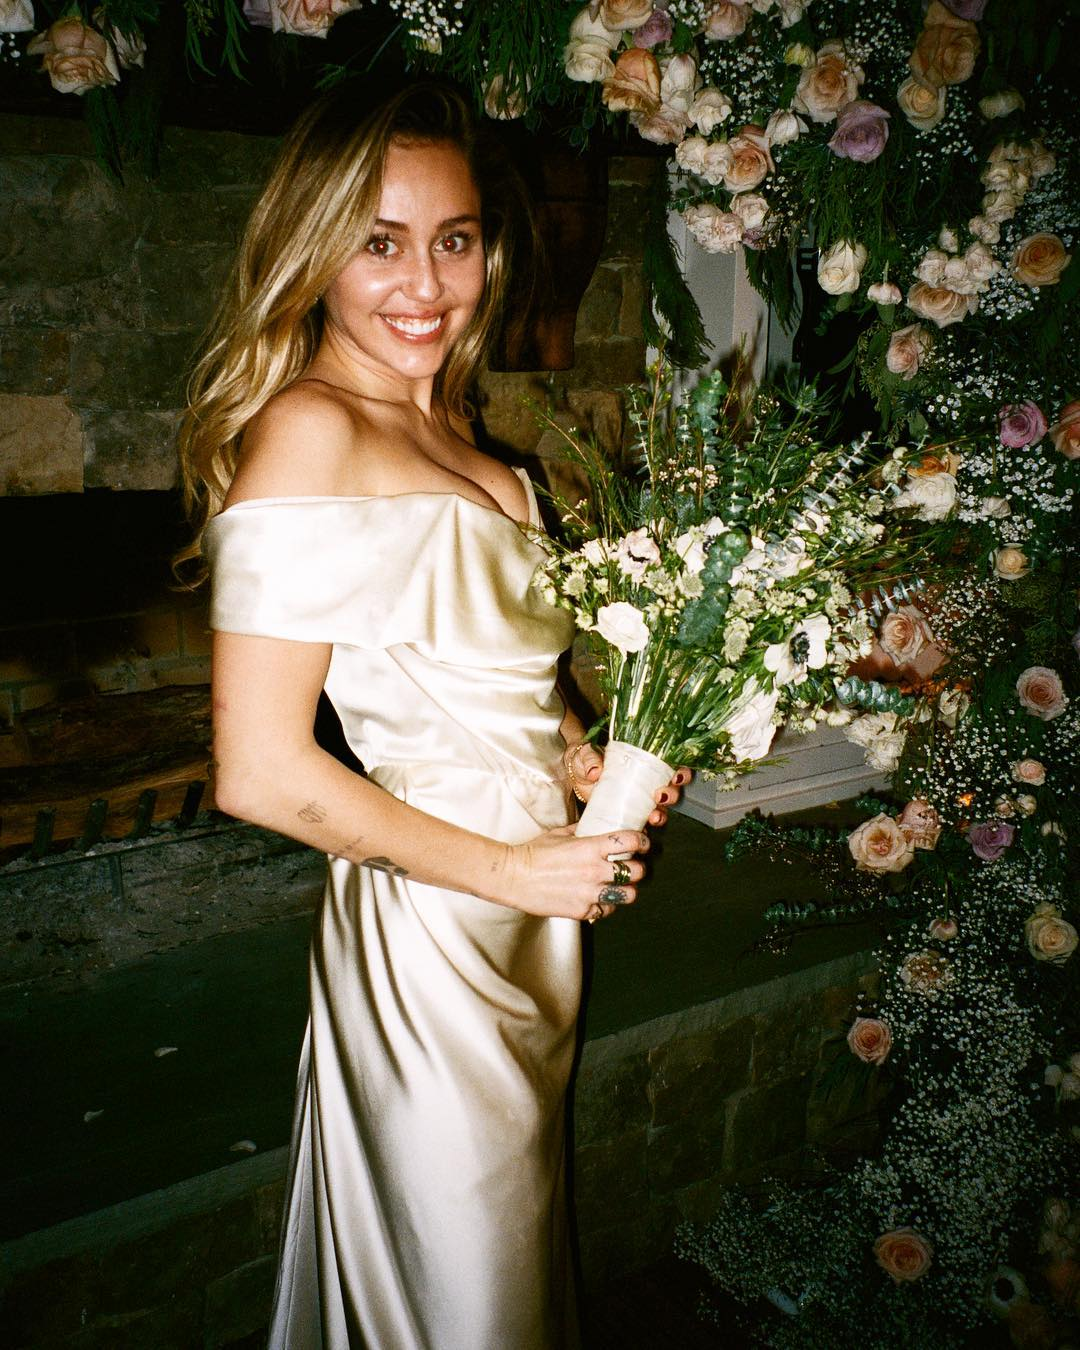 miley cyrus holding her wedding bouquet